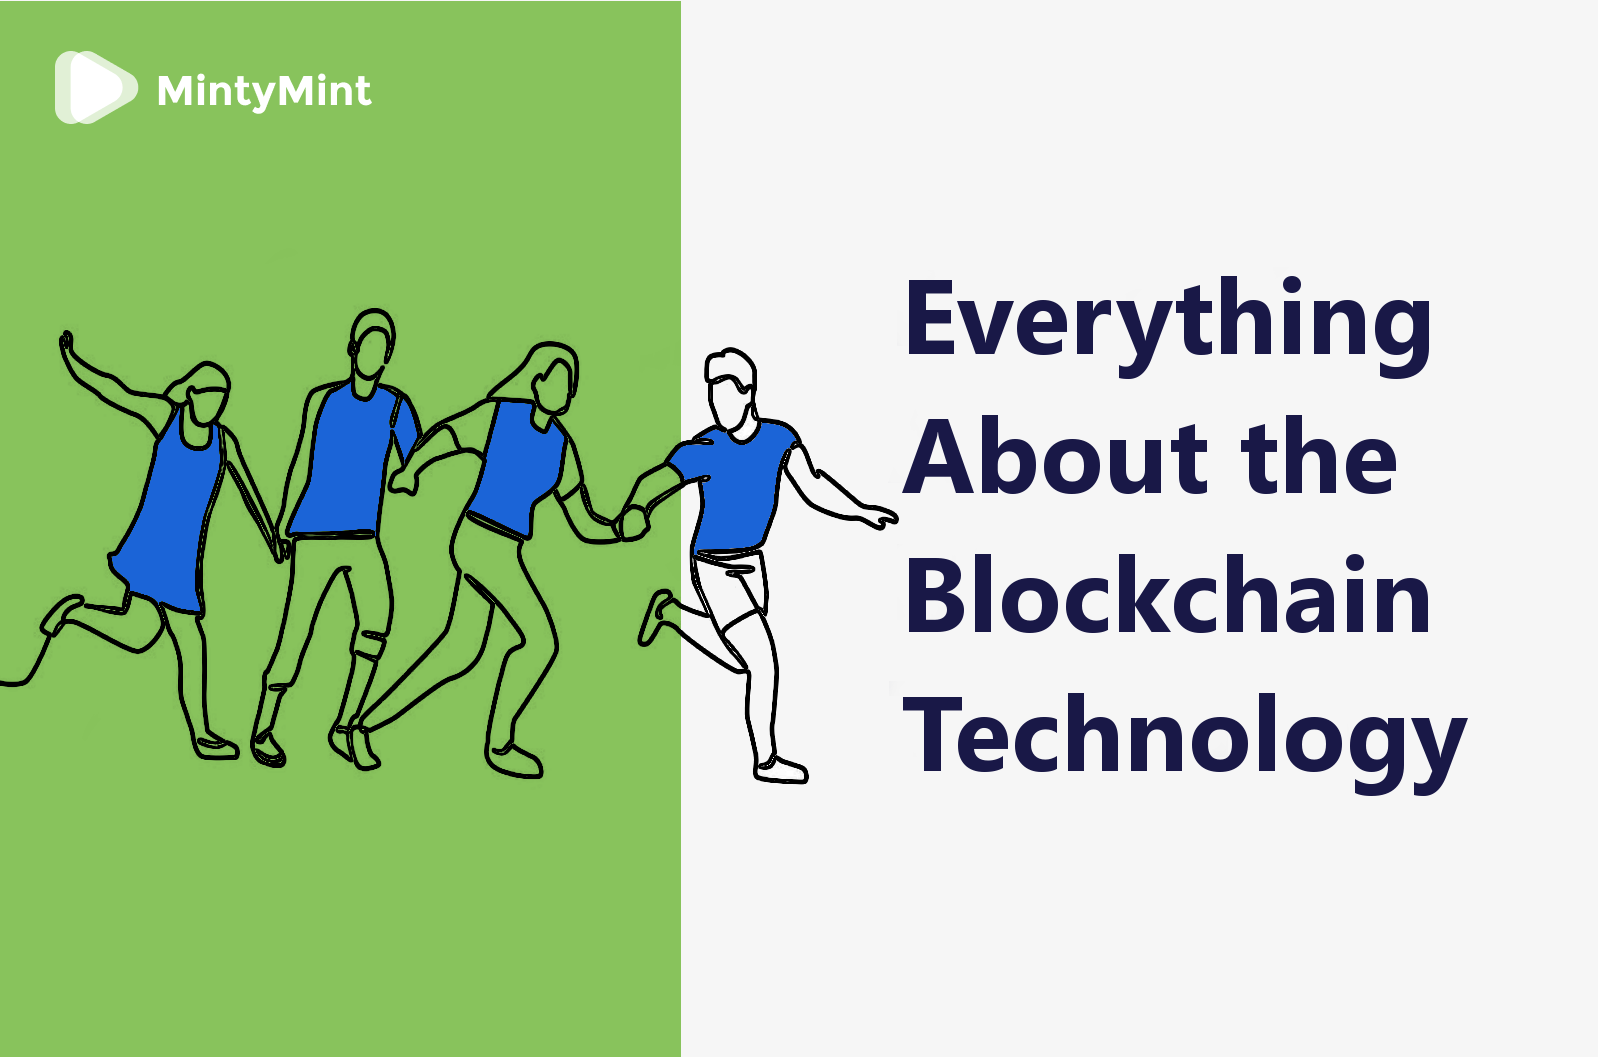 Everything About the Blockchain Technology